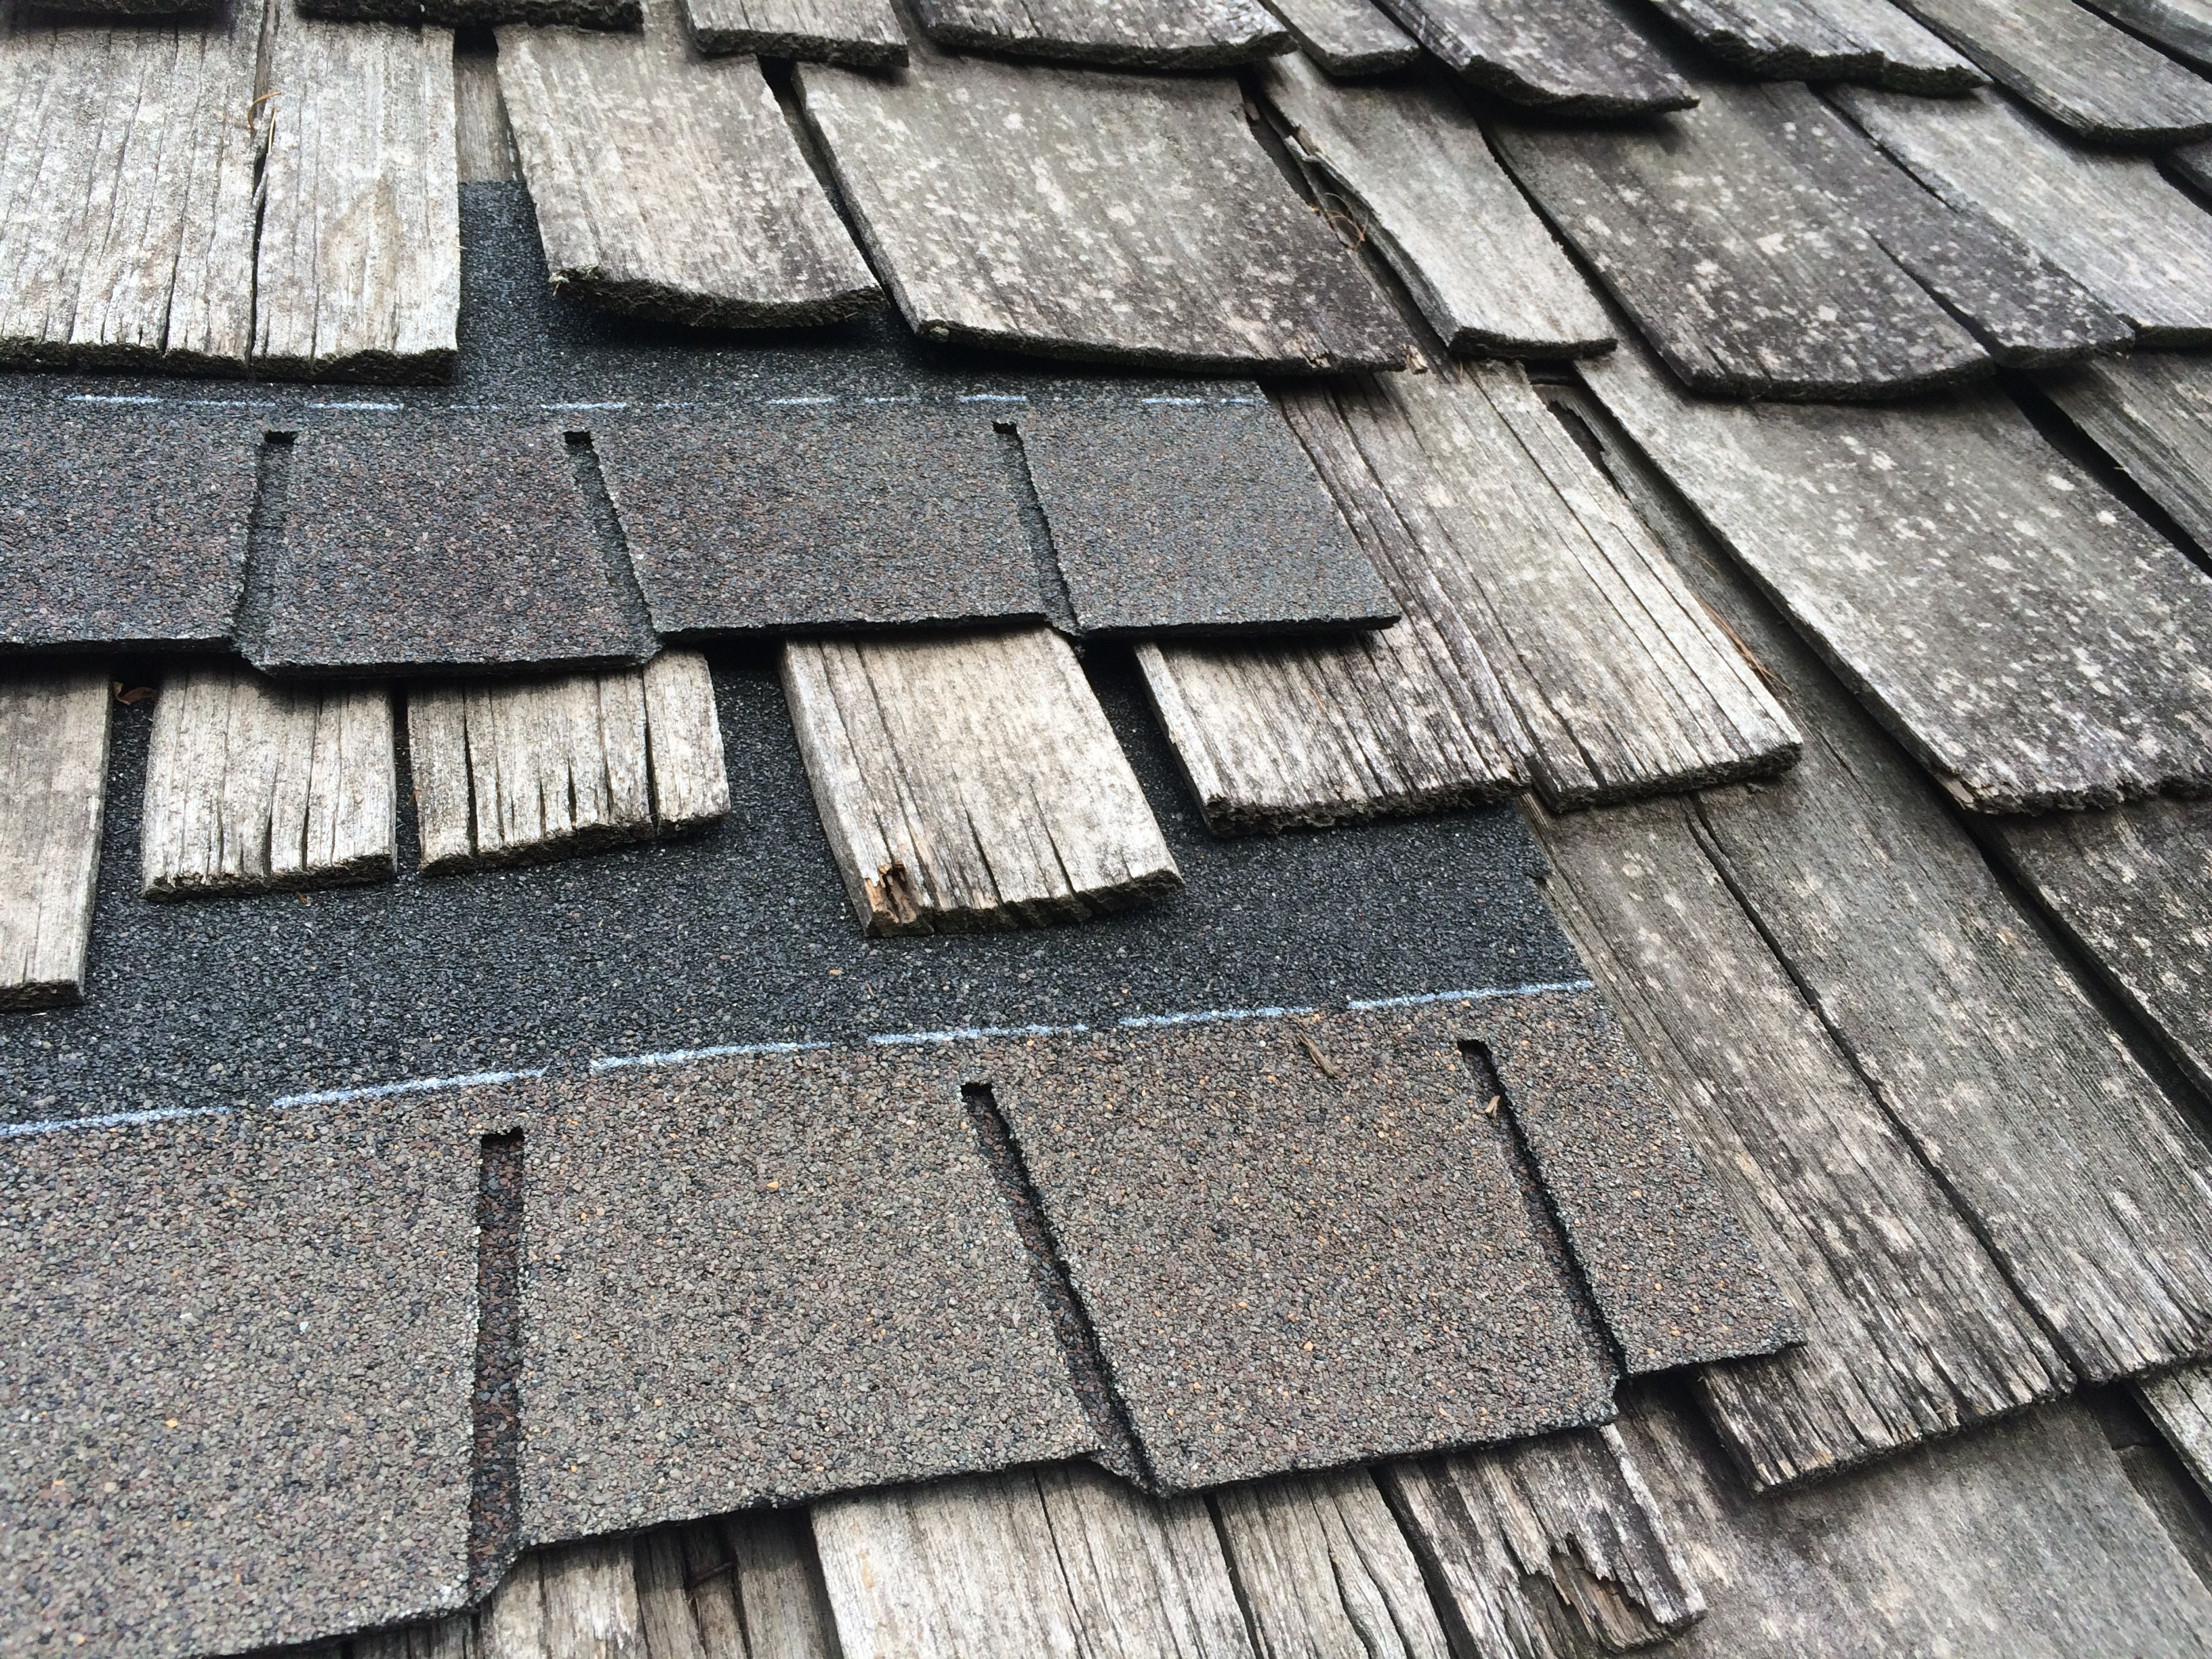 Gaf Glenwood Shingles Are The Most Authentic Wood Shake Look Shingle You Can Buy Here S A Side By Side Look Of How They Appear Pla Wood Shakes Shingling Wood